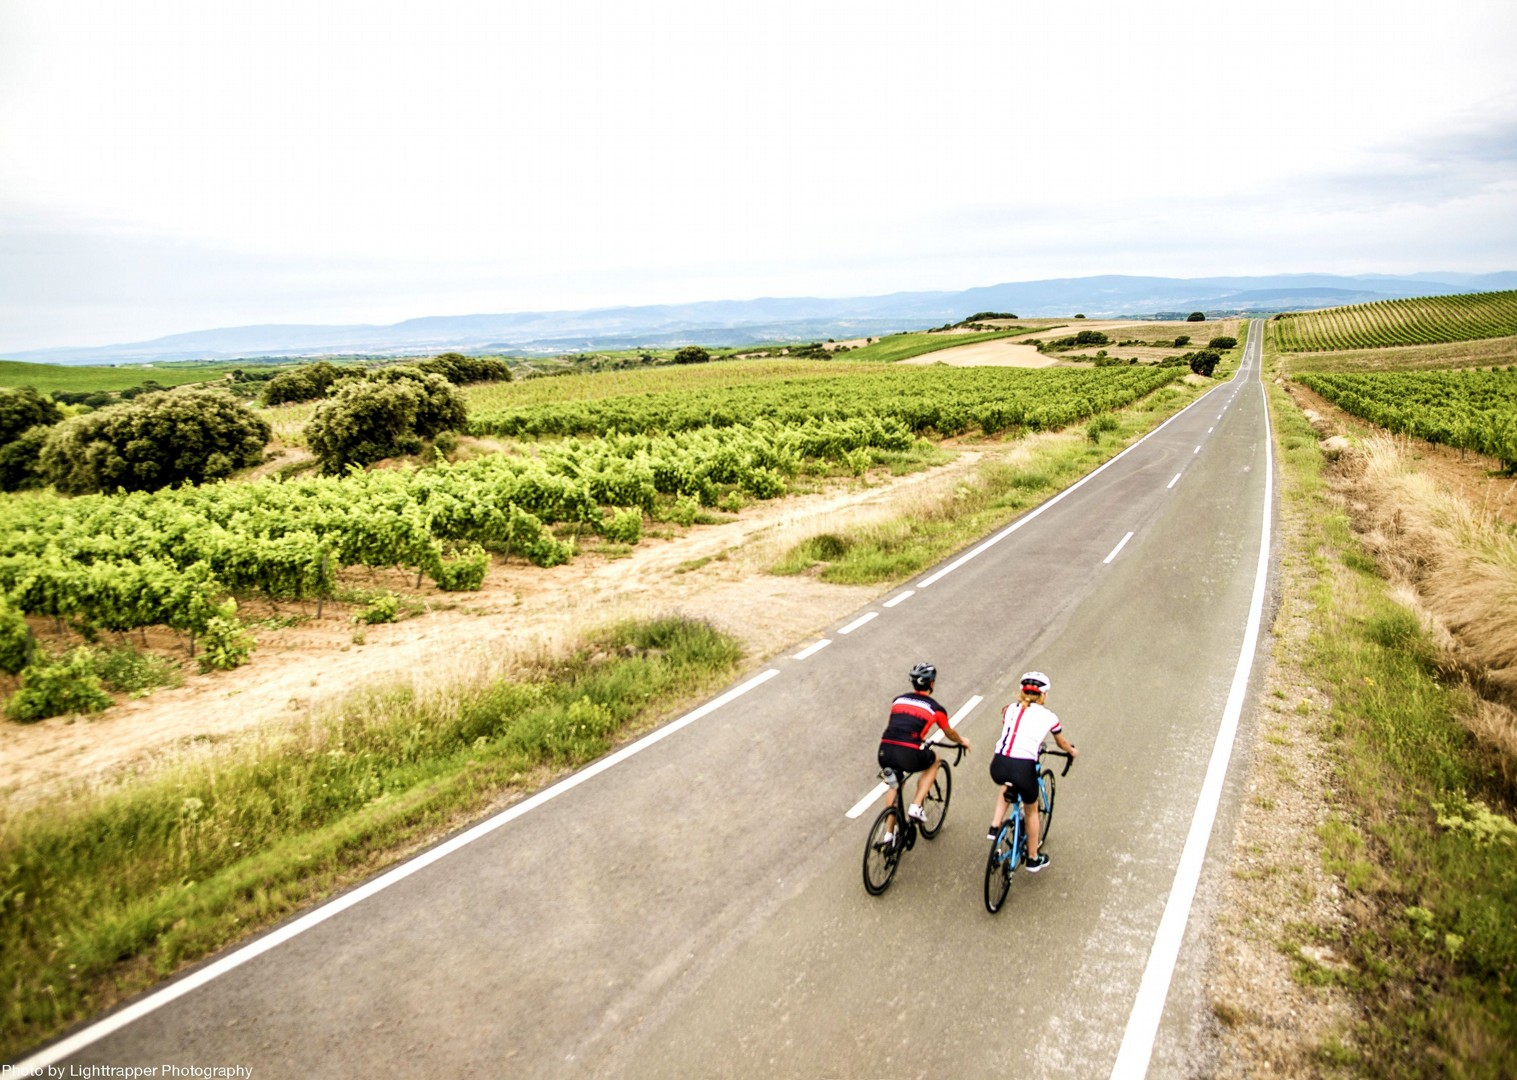 vineyard-spain-rioja-holiday-on-bike-skedaddle.jpg - Northern Spain - La Rioja - Ruta del Vino - Self-Guided Road Cycling Holiday - Road Cycling